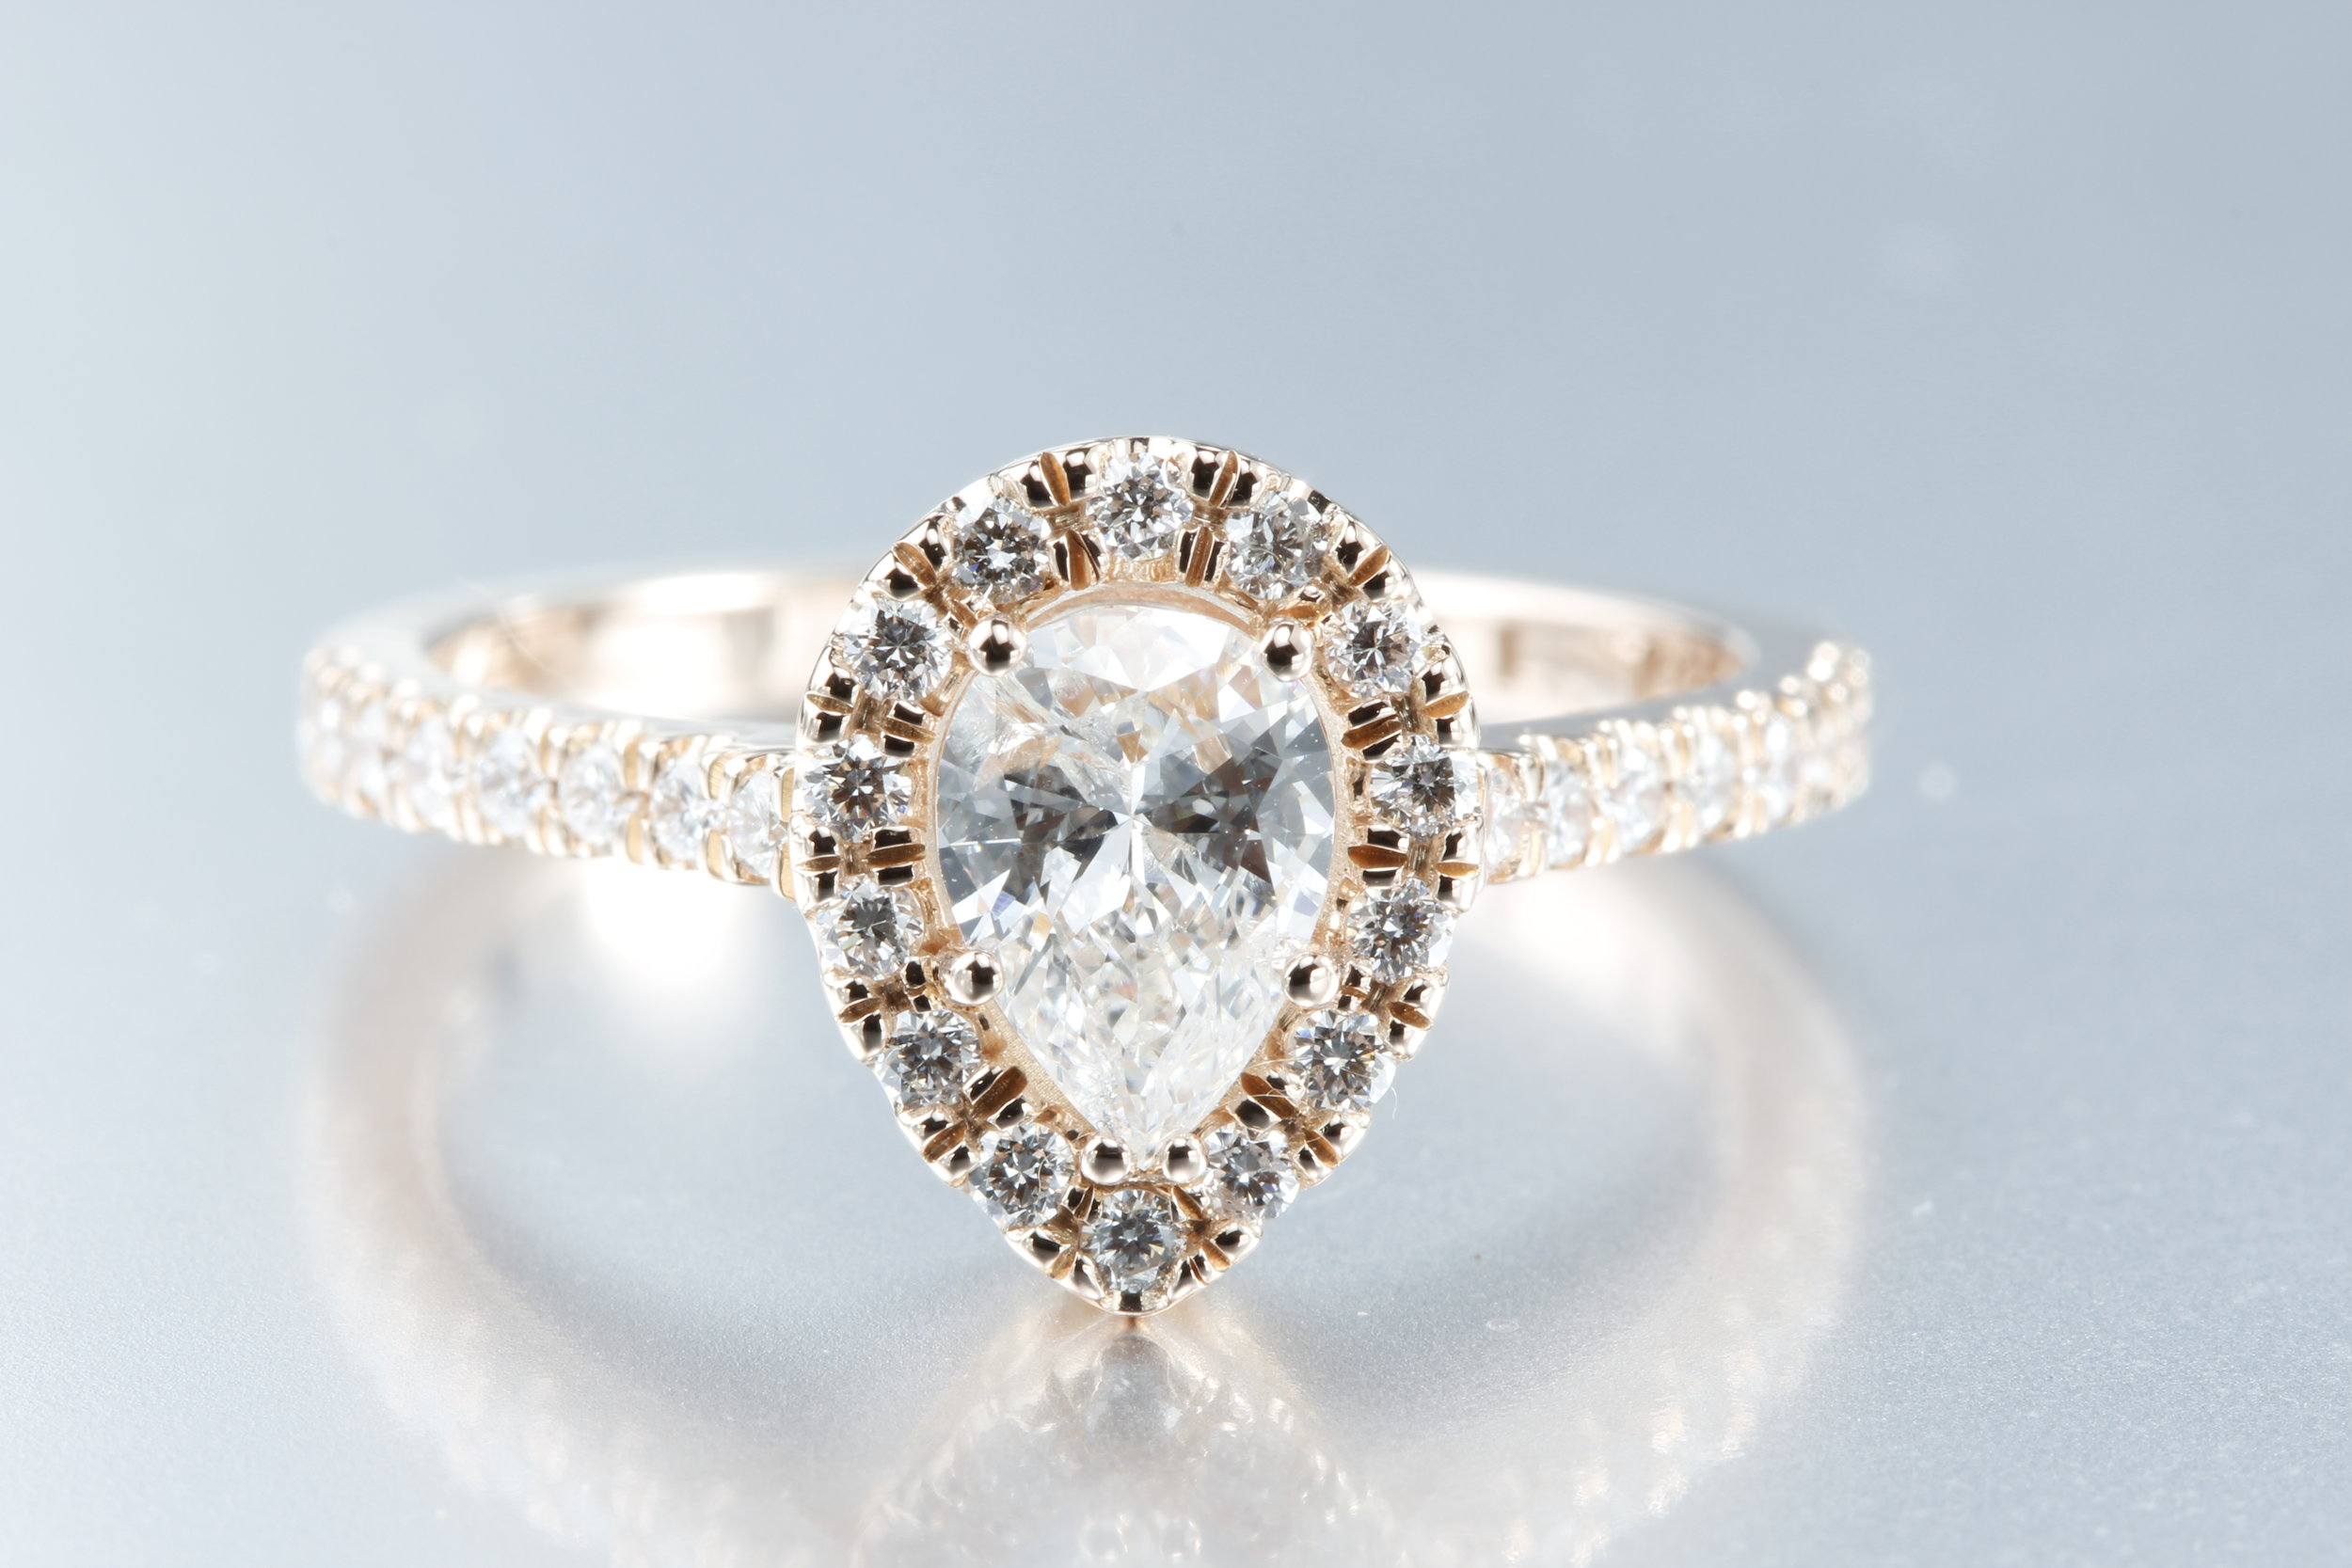 Pear Diamond Halo Ring with 14K Rose Gold - This vintage-inspired ring is stunning with its simplicity.